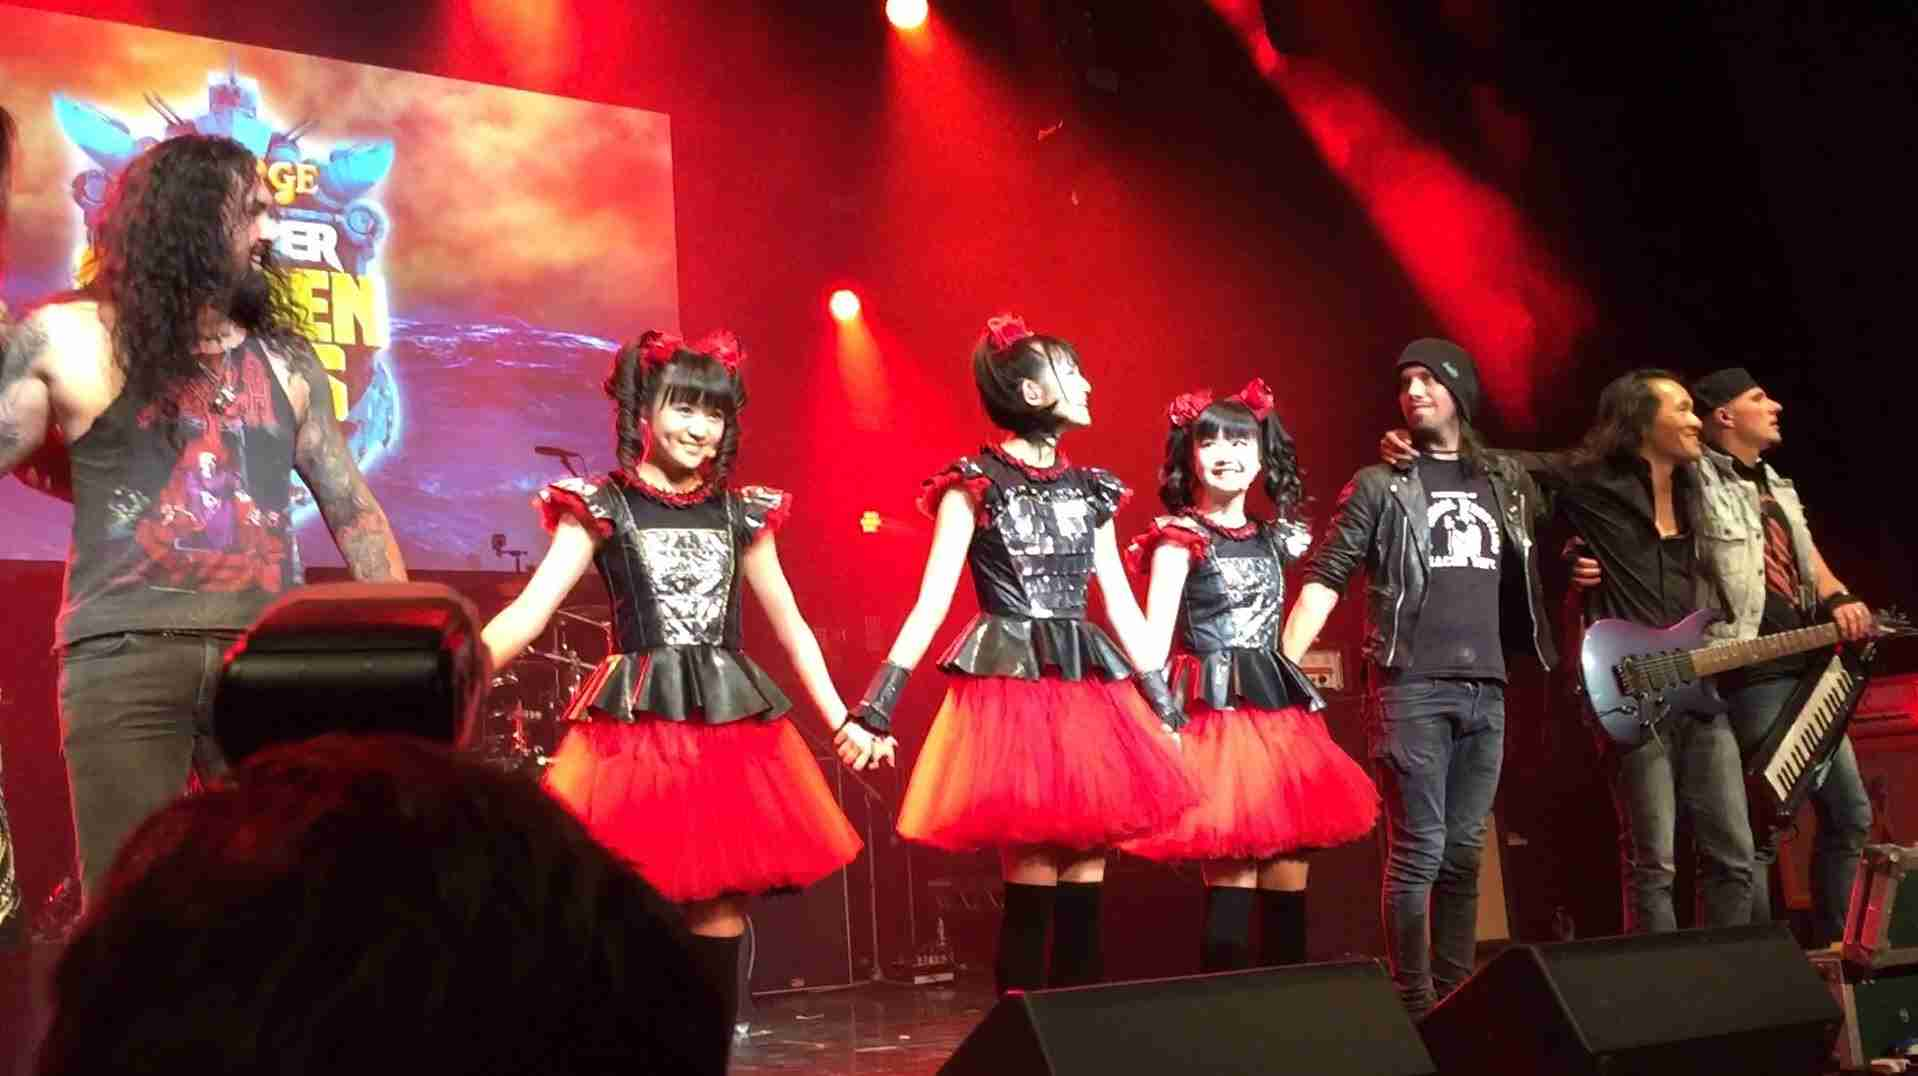 BABYMETAL with Dragonforce - Gimme Chocolate (ギミチョコ!!)  at Golden Gods, o2,  60fps - YouTube